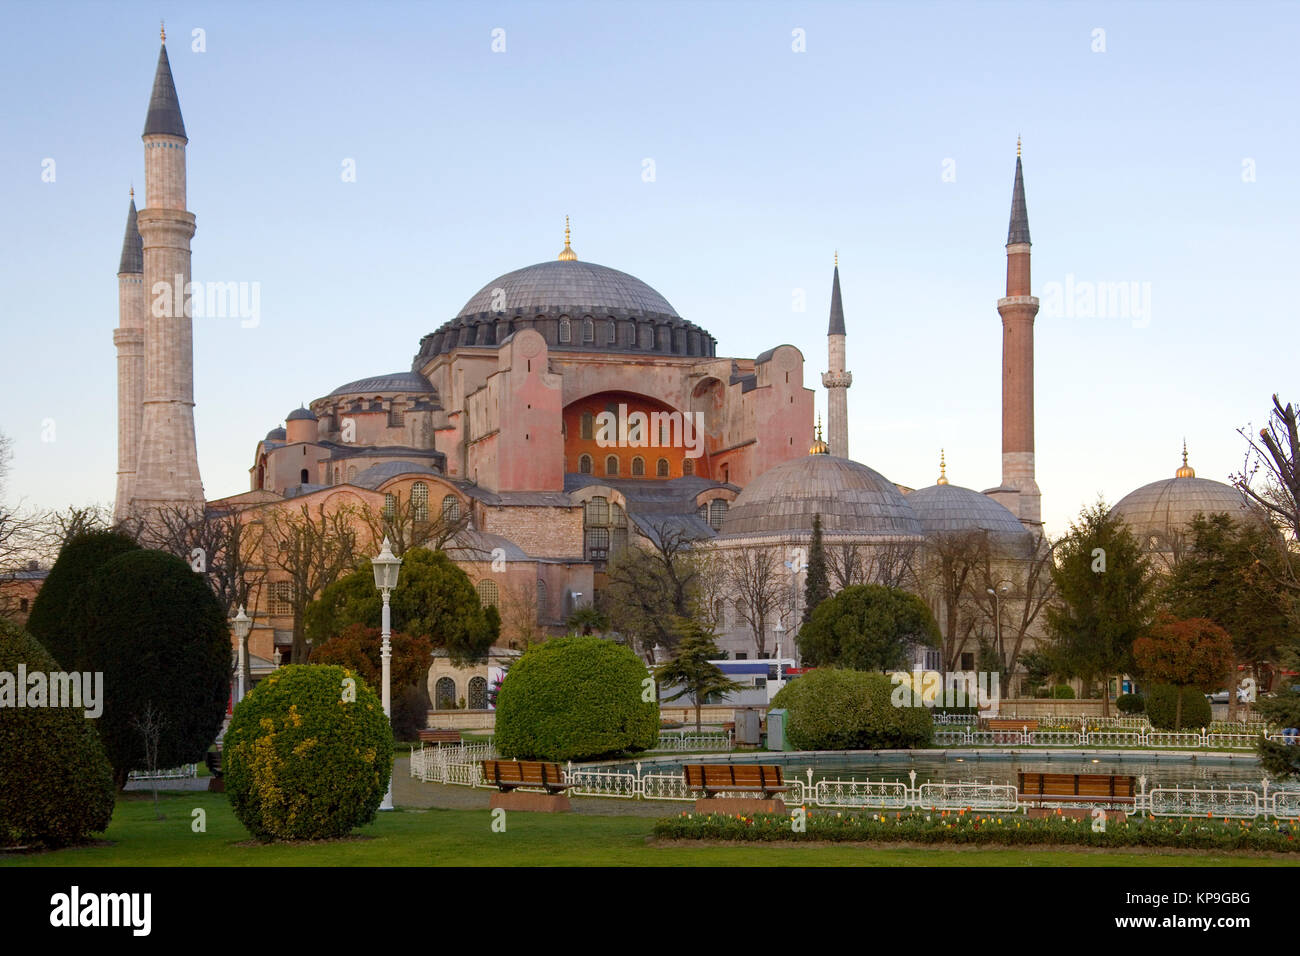 Hagia Sophia in the city of Istanbul in Turkey. From the date of its construction in 537AD, and until 1453, it served - Stock Image